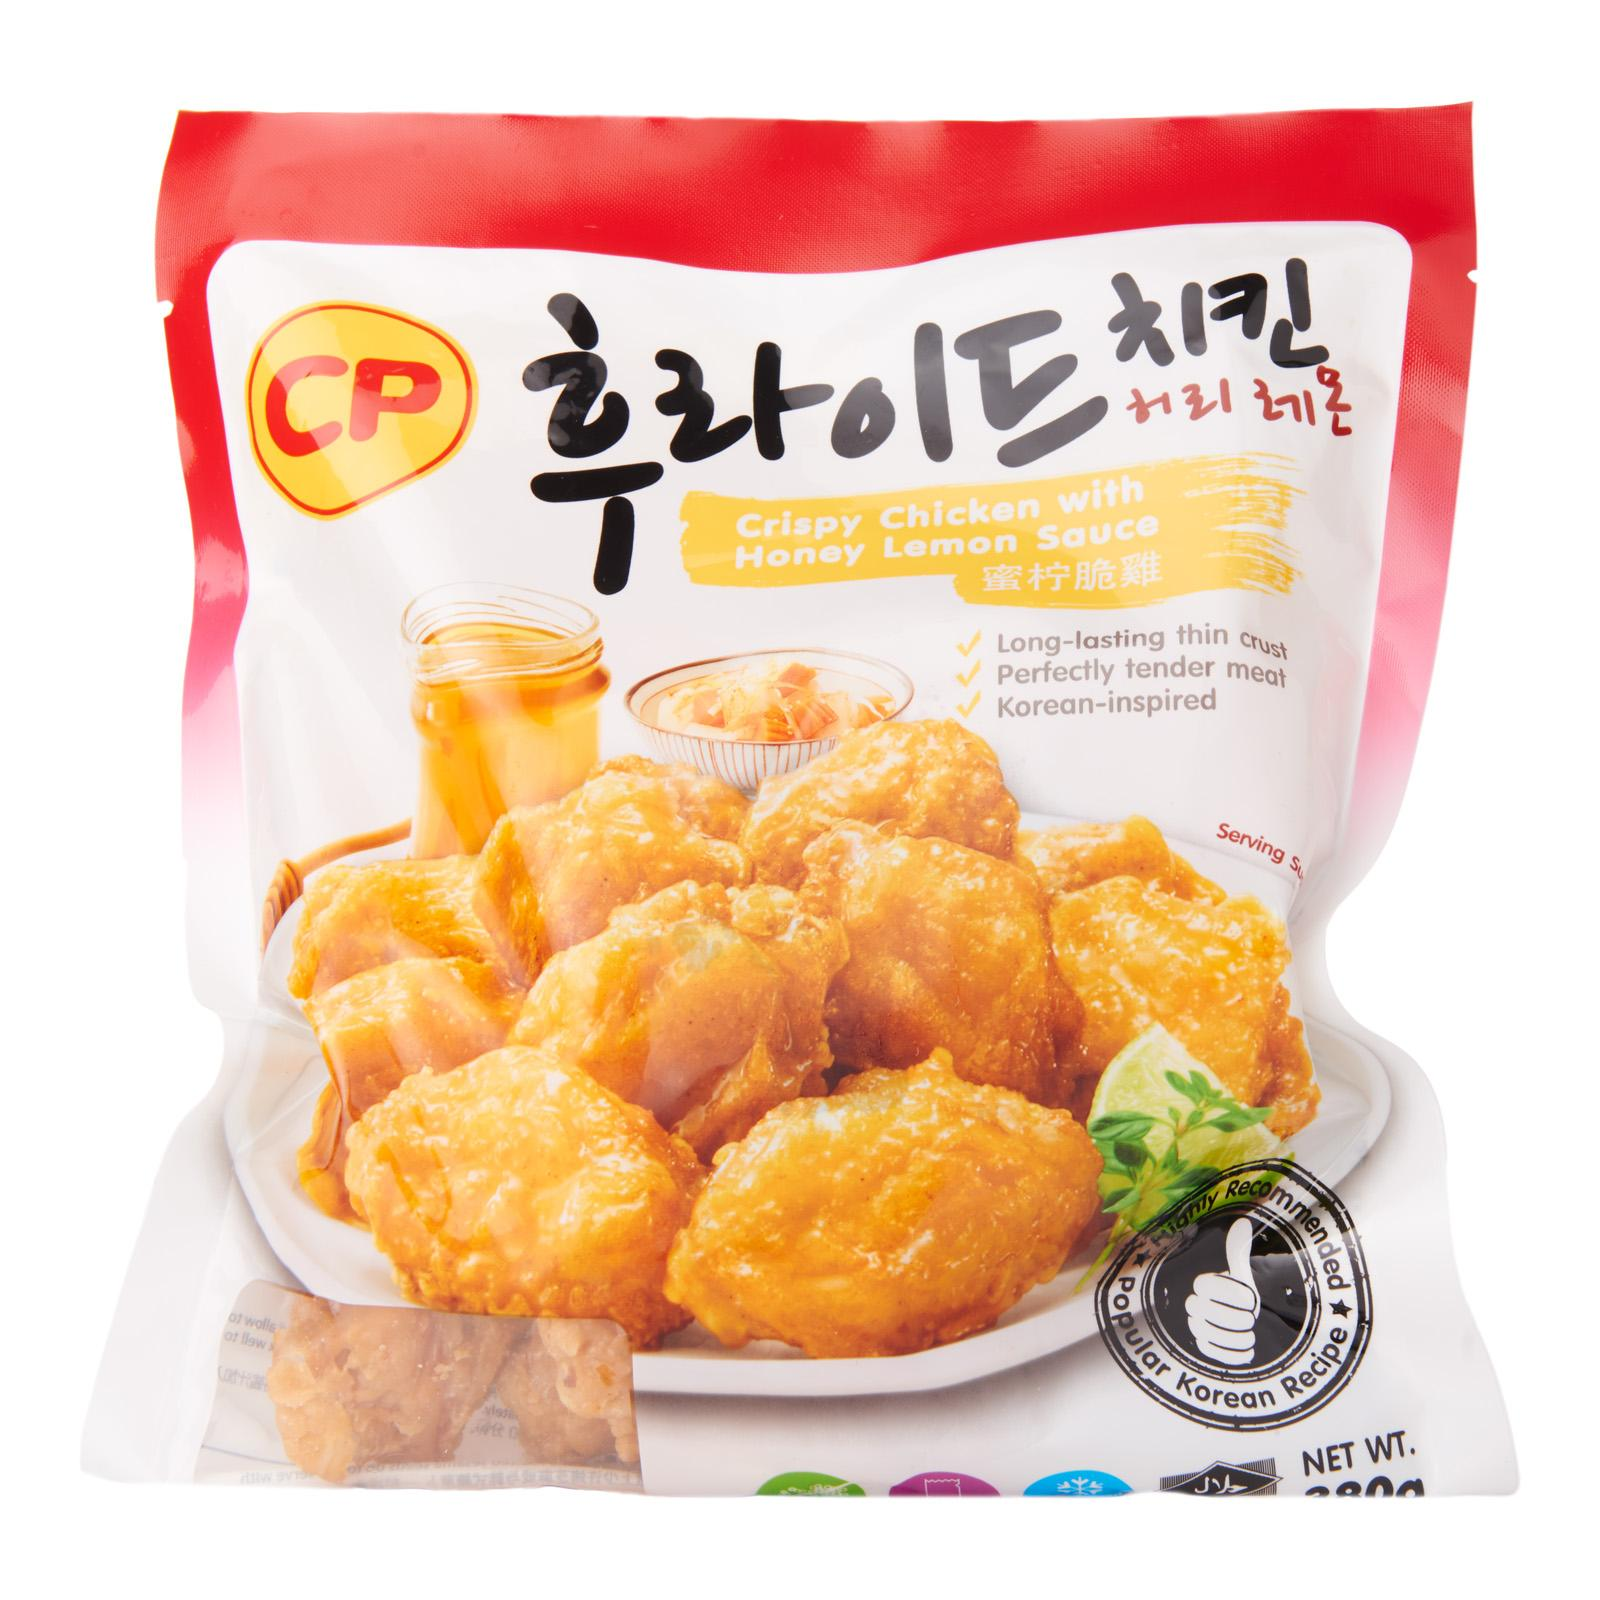 CP Crispy Chicken with Honey Lemon Sauce - Frozen